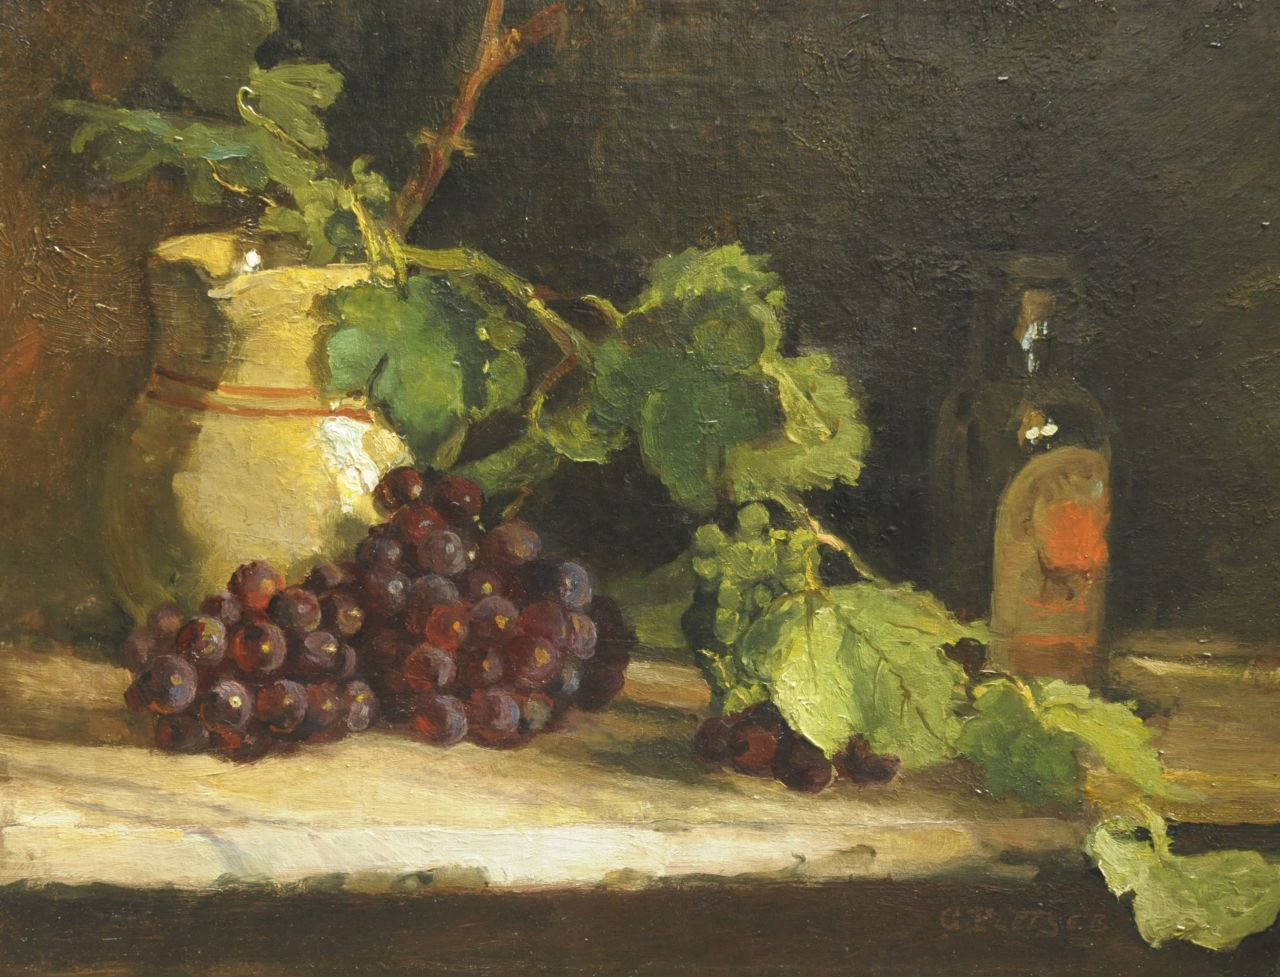 George Pletser | A still life with grapes, oil on canvas, 42.5 x 55.5 cm, signed l.r.